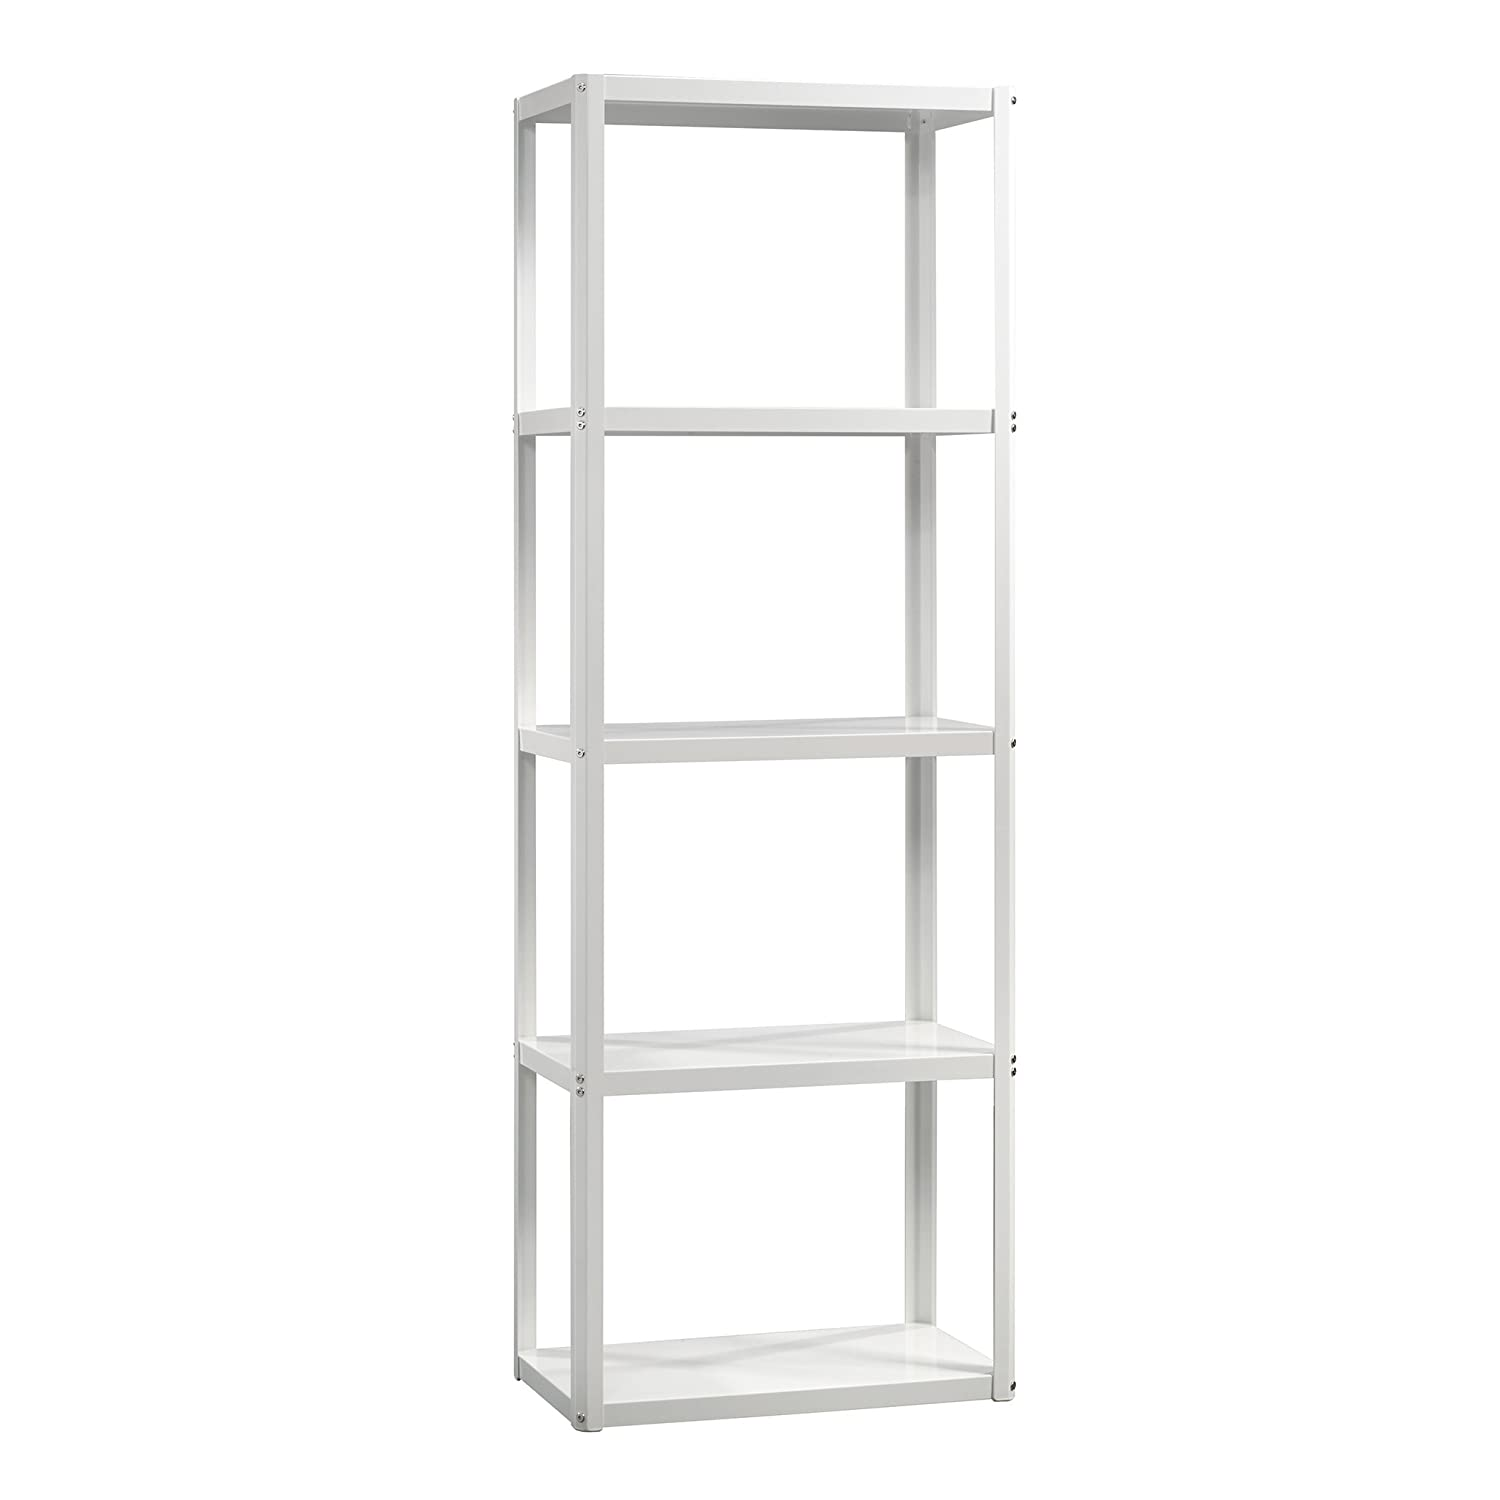 Amazon com sauder 414972 harvey park tower bookcase l 24 02 x w 14 02 x h 69 72 arctic white finish kitchen dining